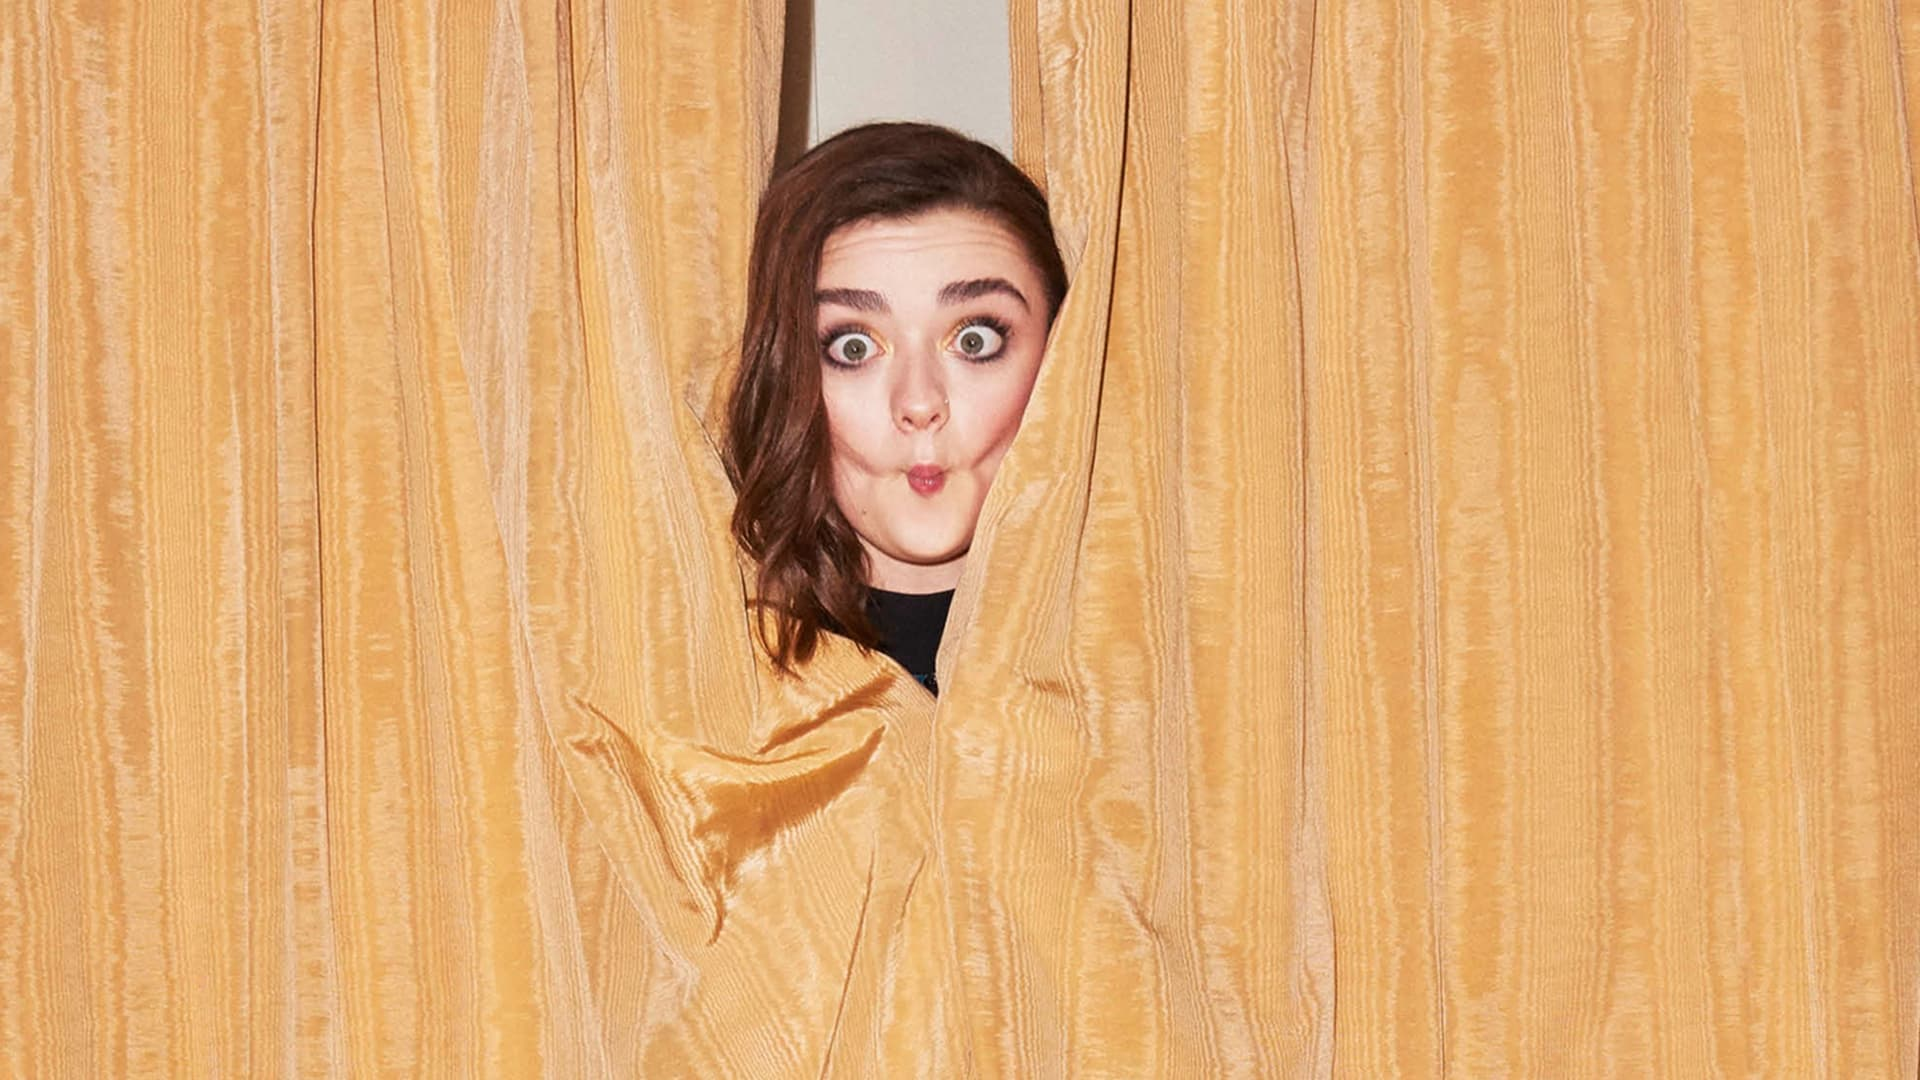 Hd Car Games Wallpapers Maisie Williams Wallpapers Hd High Quality Resolution Download